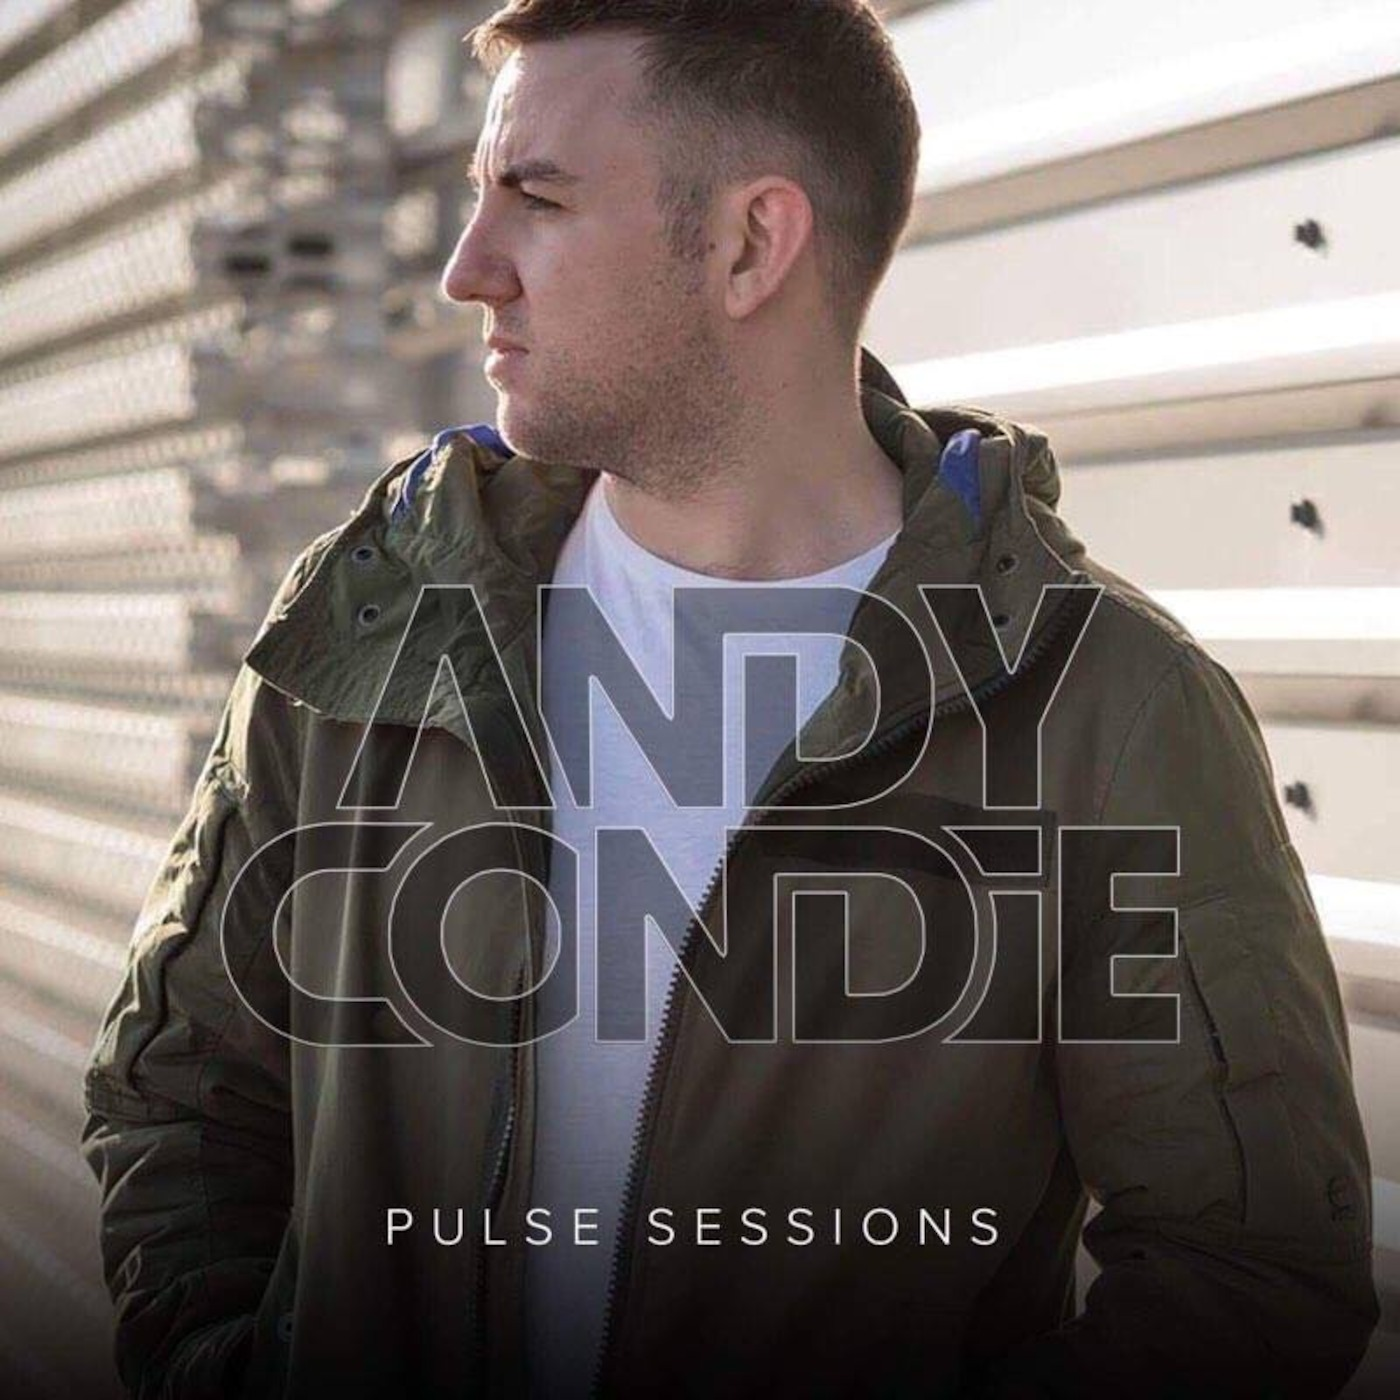 Andy Condie - Pulse Sessions Podcast